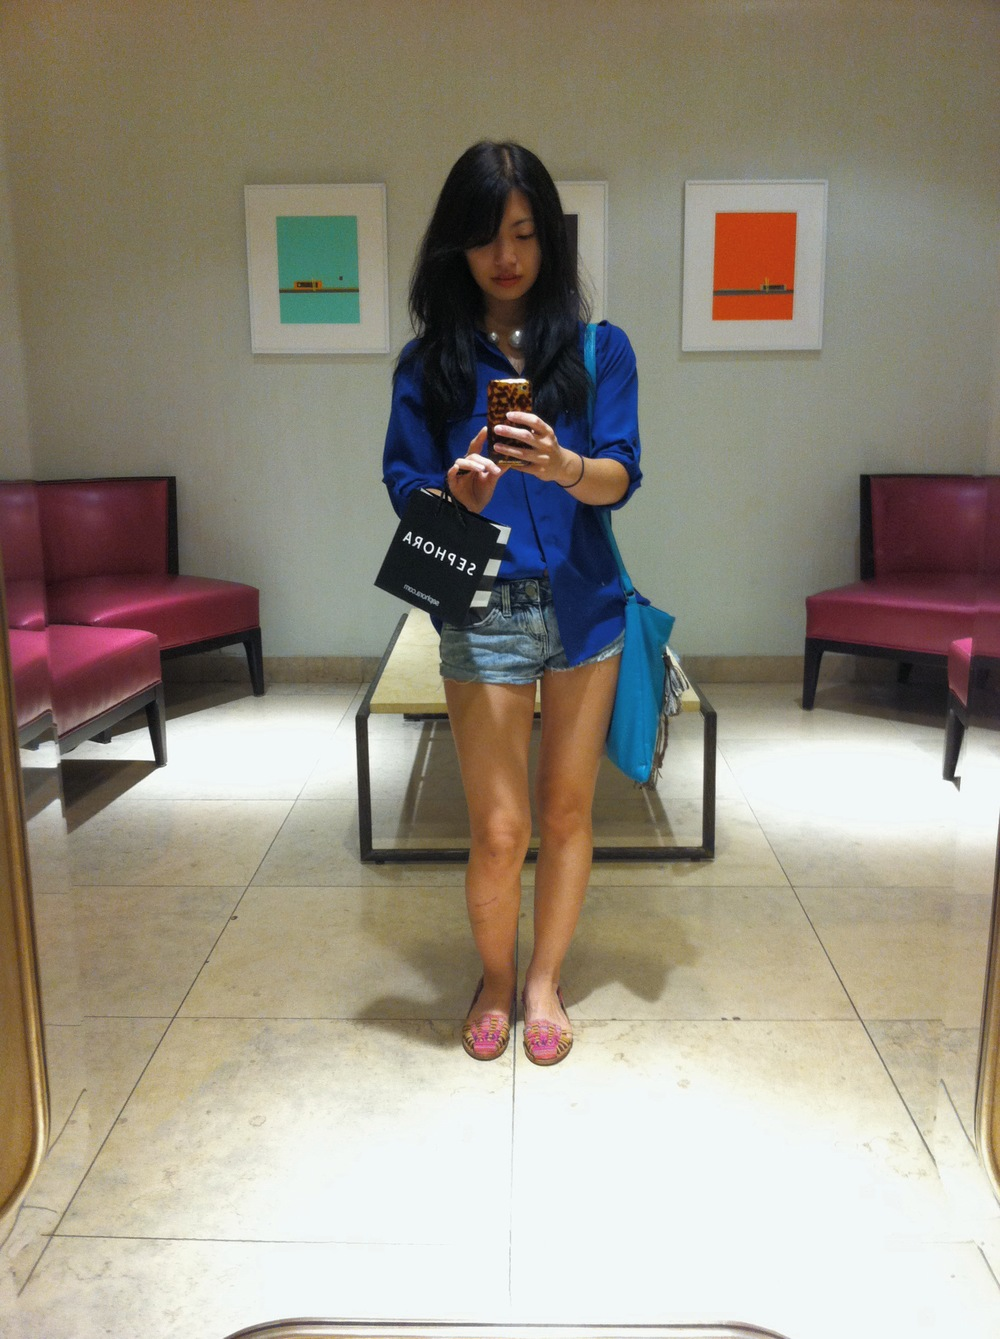 The Neiman Marcus restroom is the most amazing.